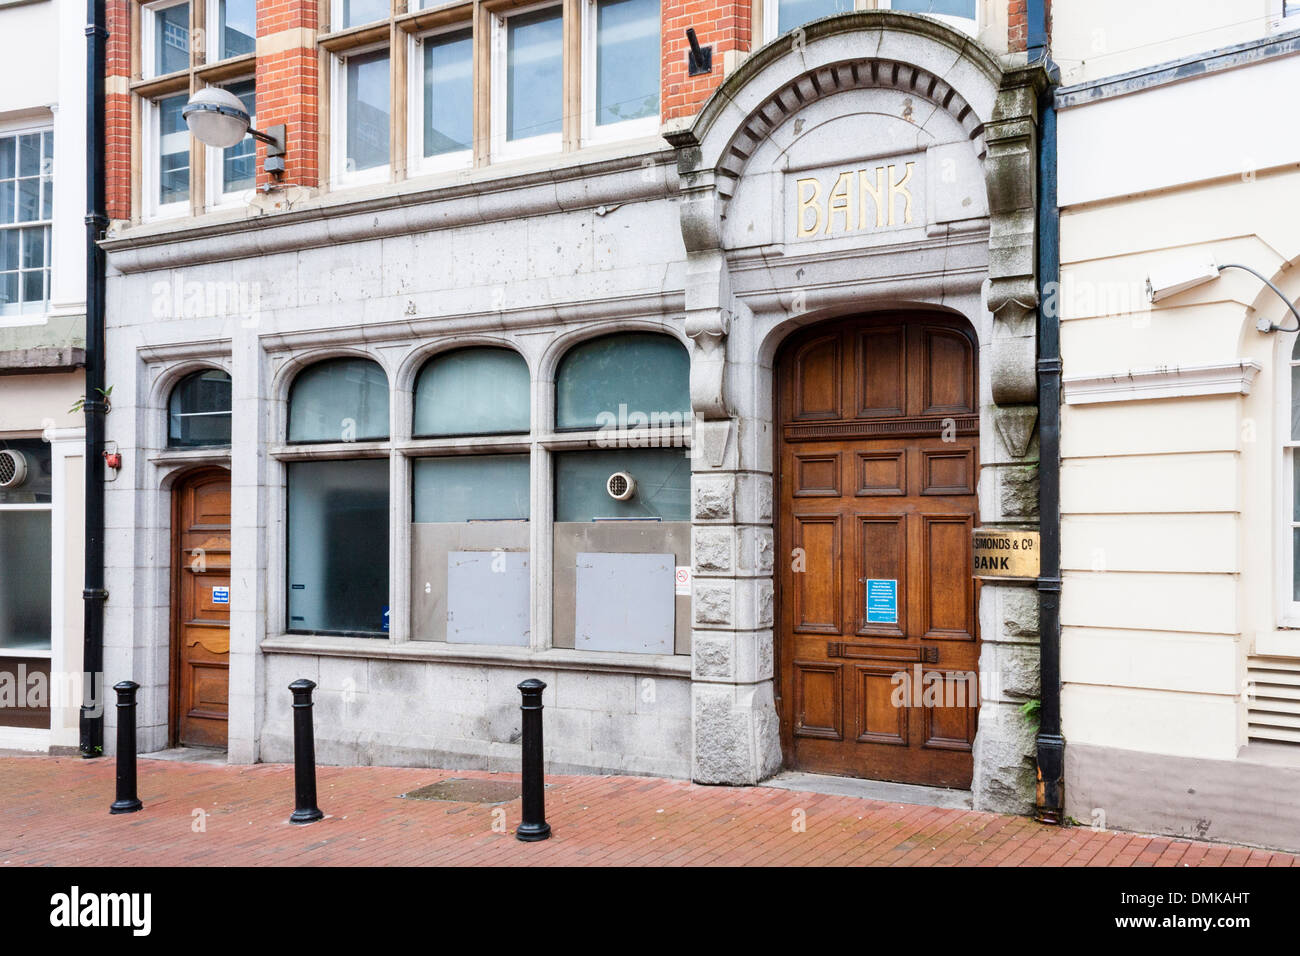 Former branch of Barclays Bank, Reading, Berkshire, England, GB, UK. - Stock Image